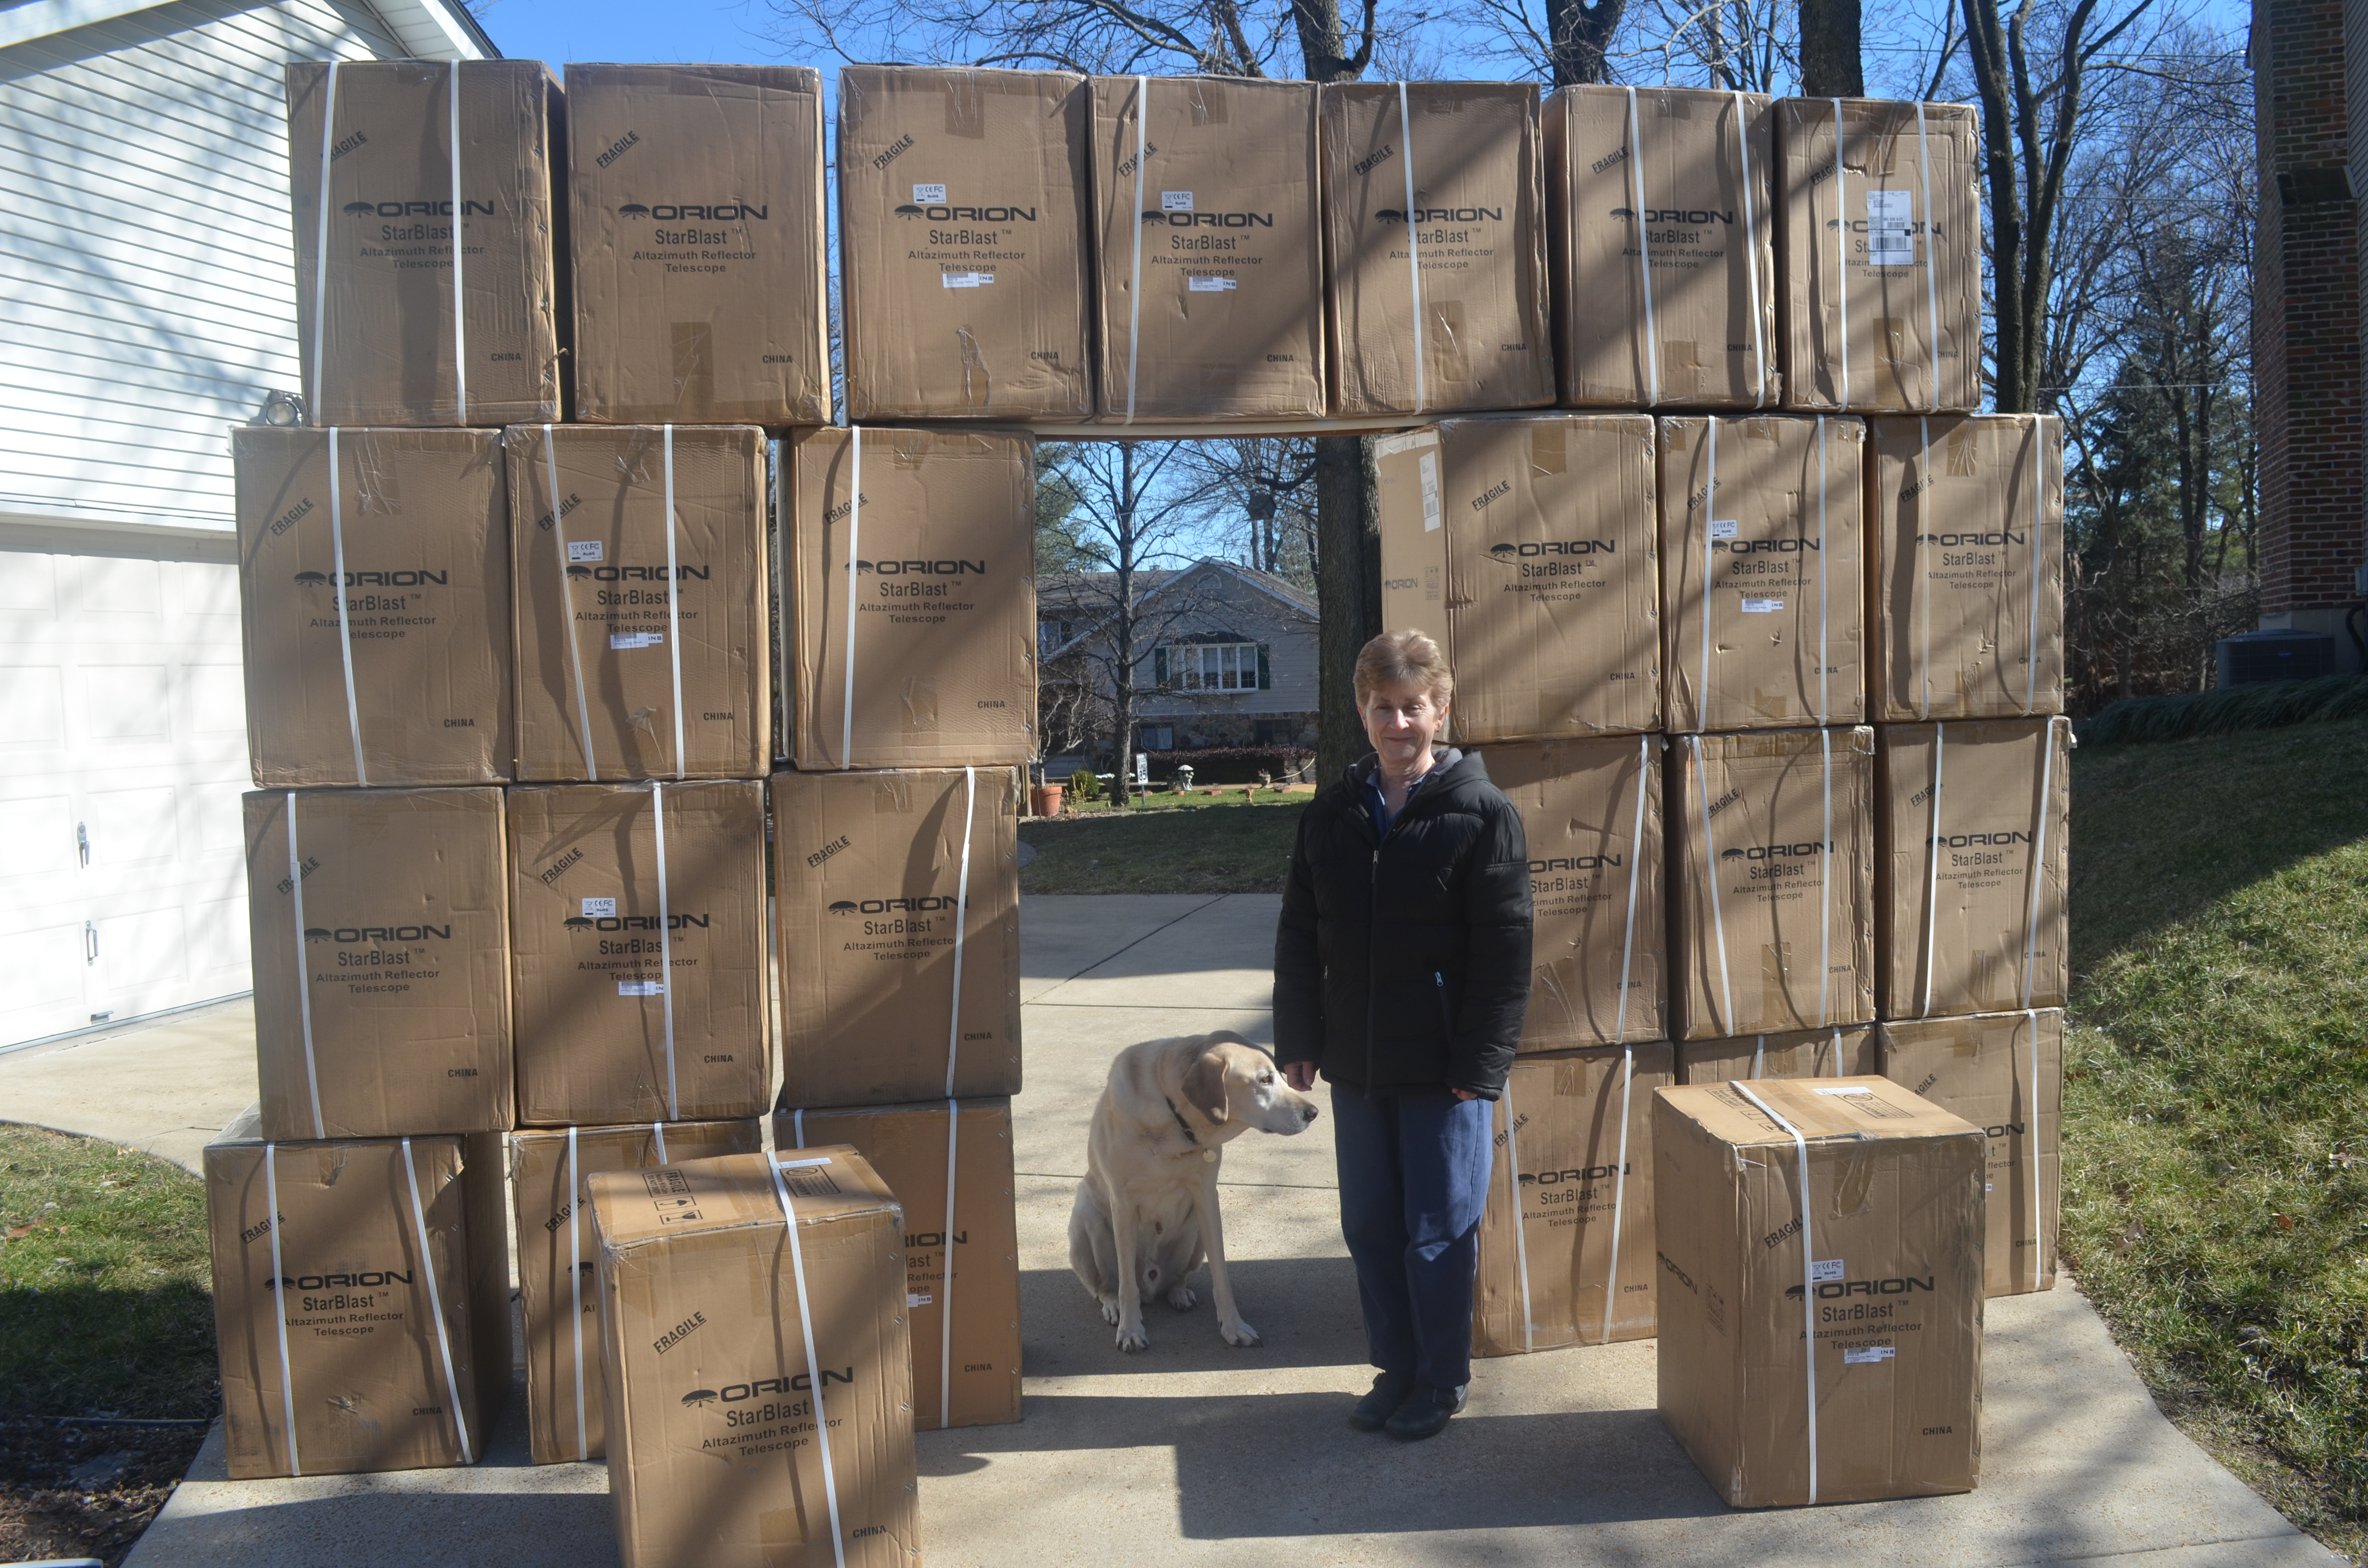 New Orion telescopes received by SLAS